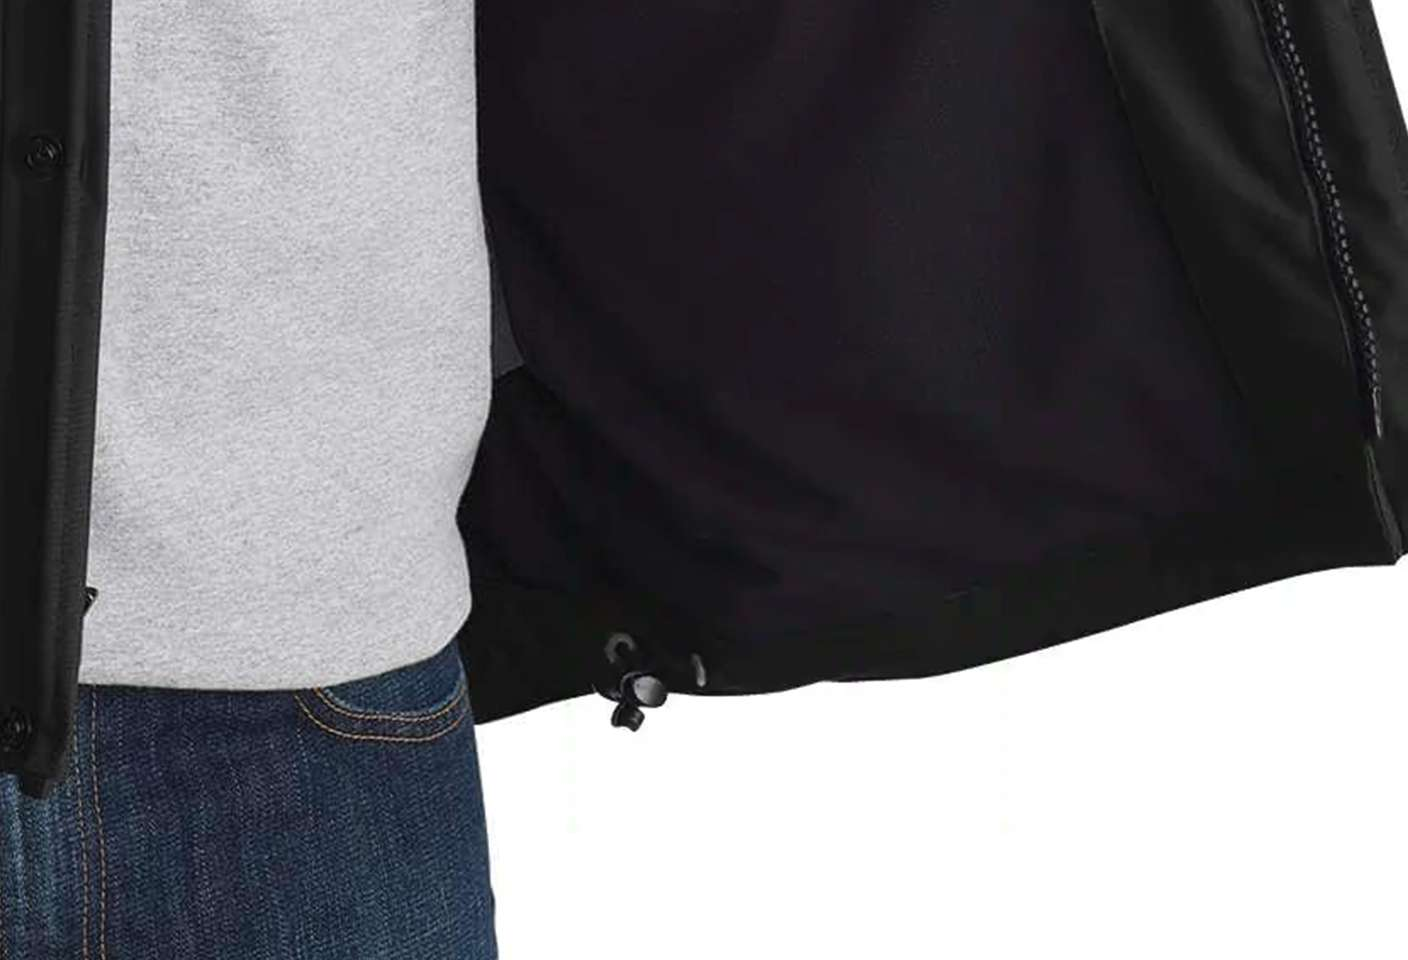 Drawcord-adjustable hem keeps out the cold